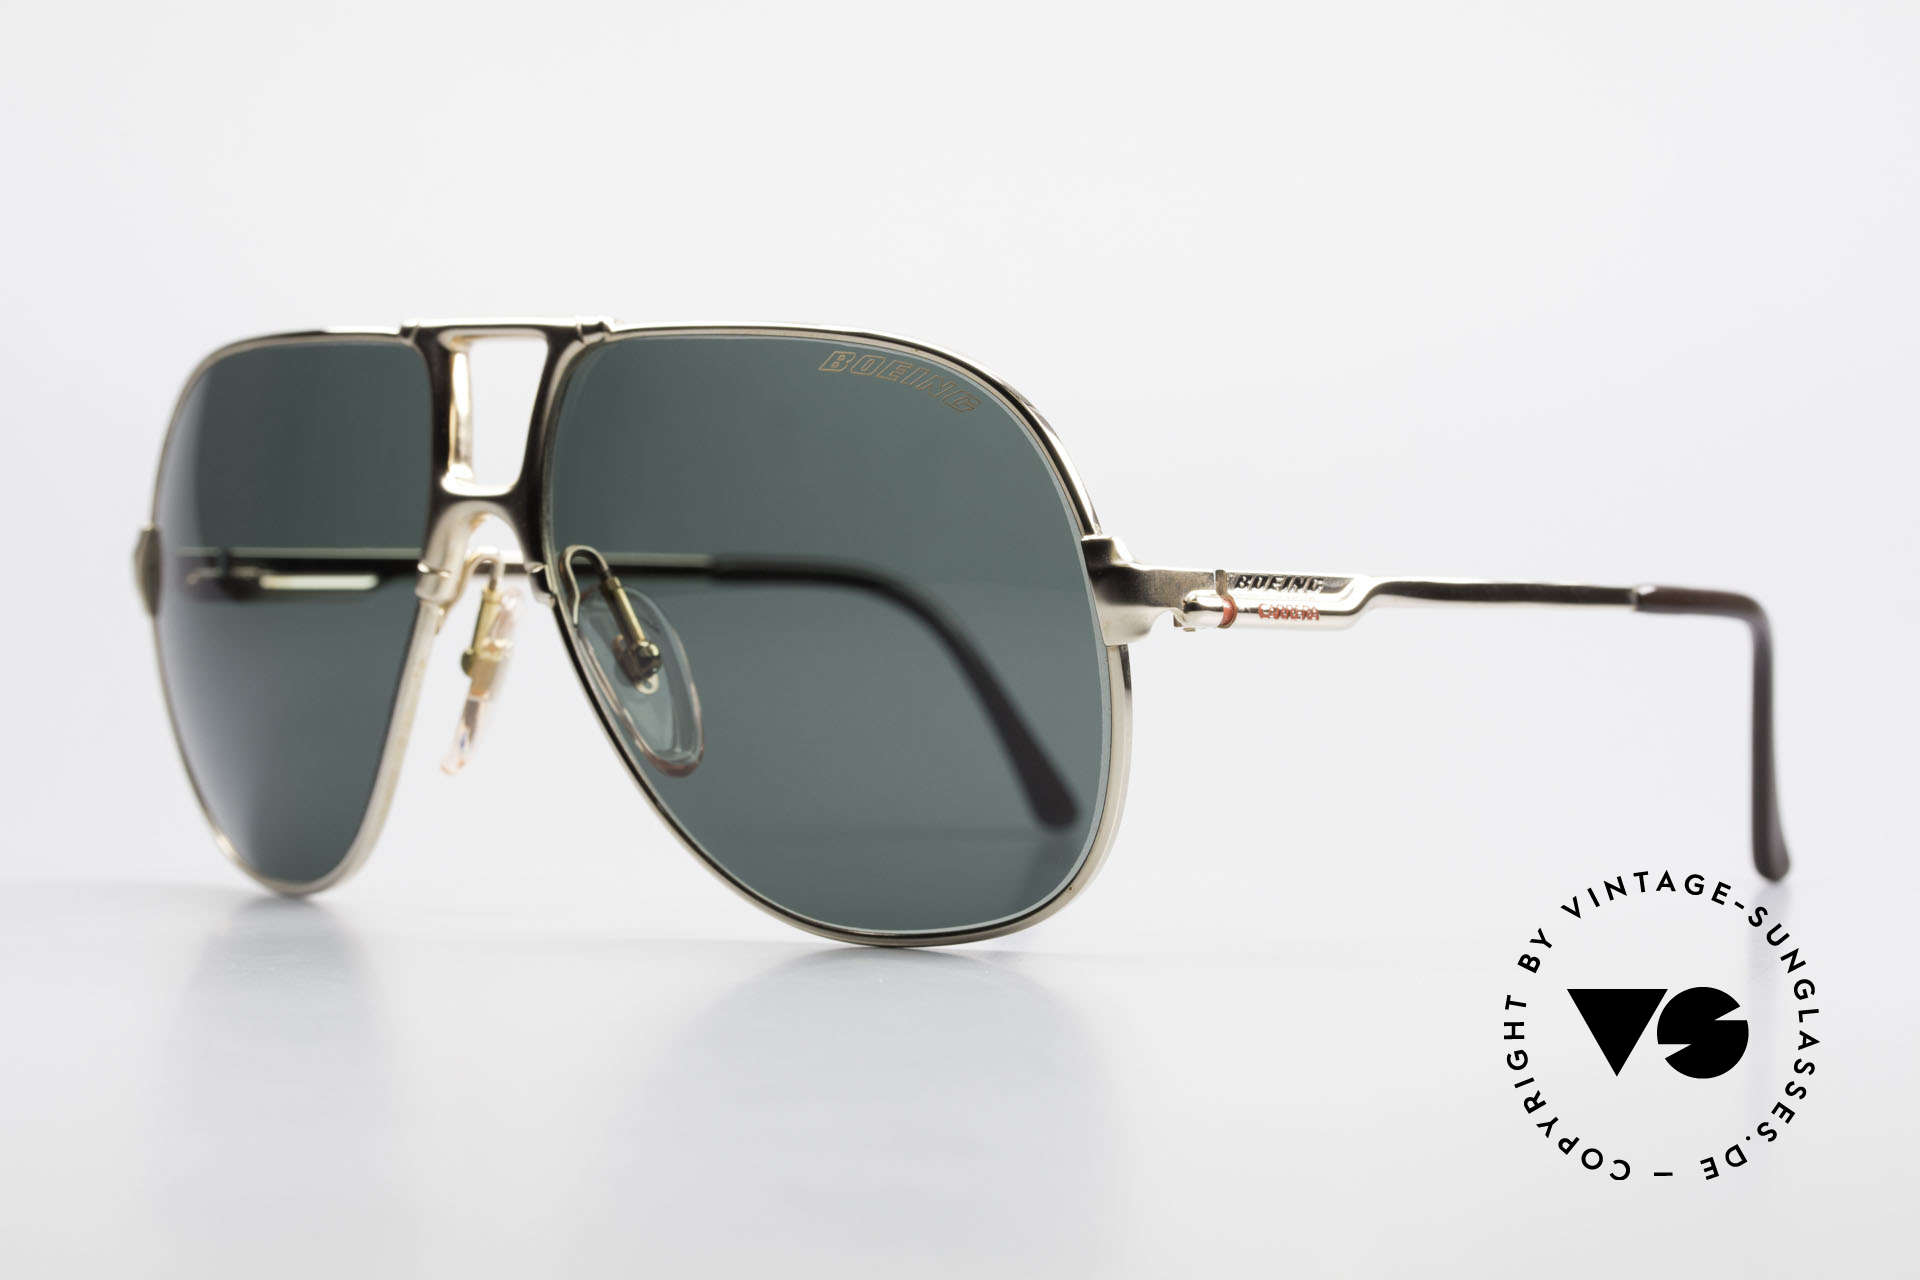 Boeing 5700 Large Old 80's Pilots Shades, hybrid between functionality, quality and lifestyle, Made for Men